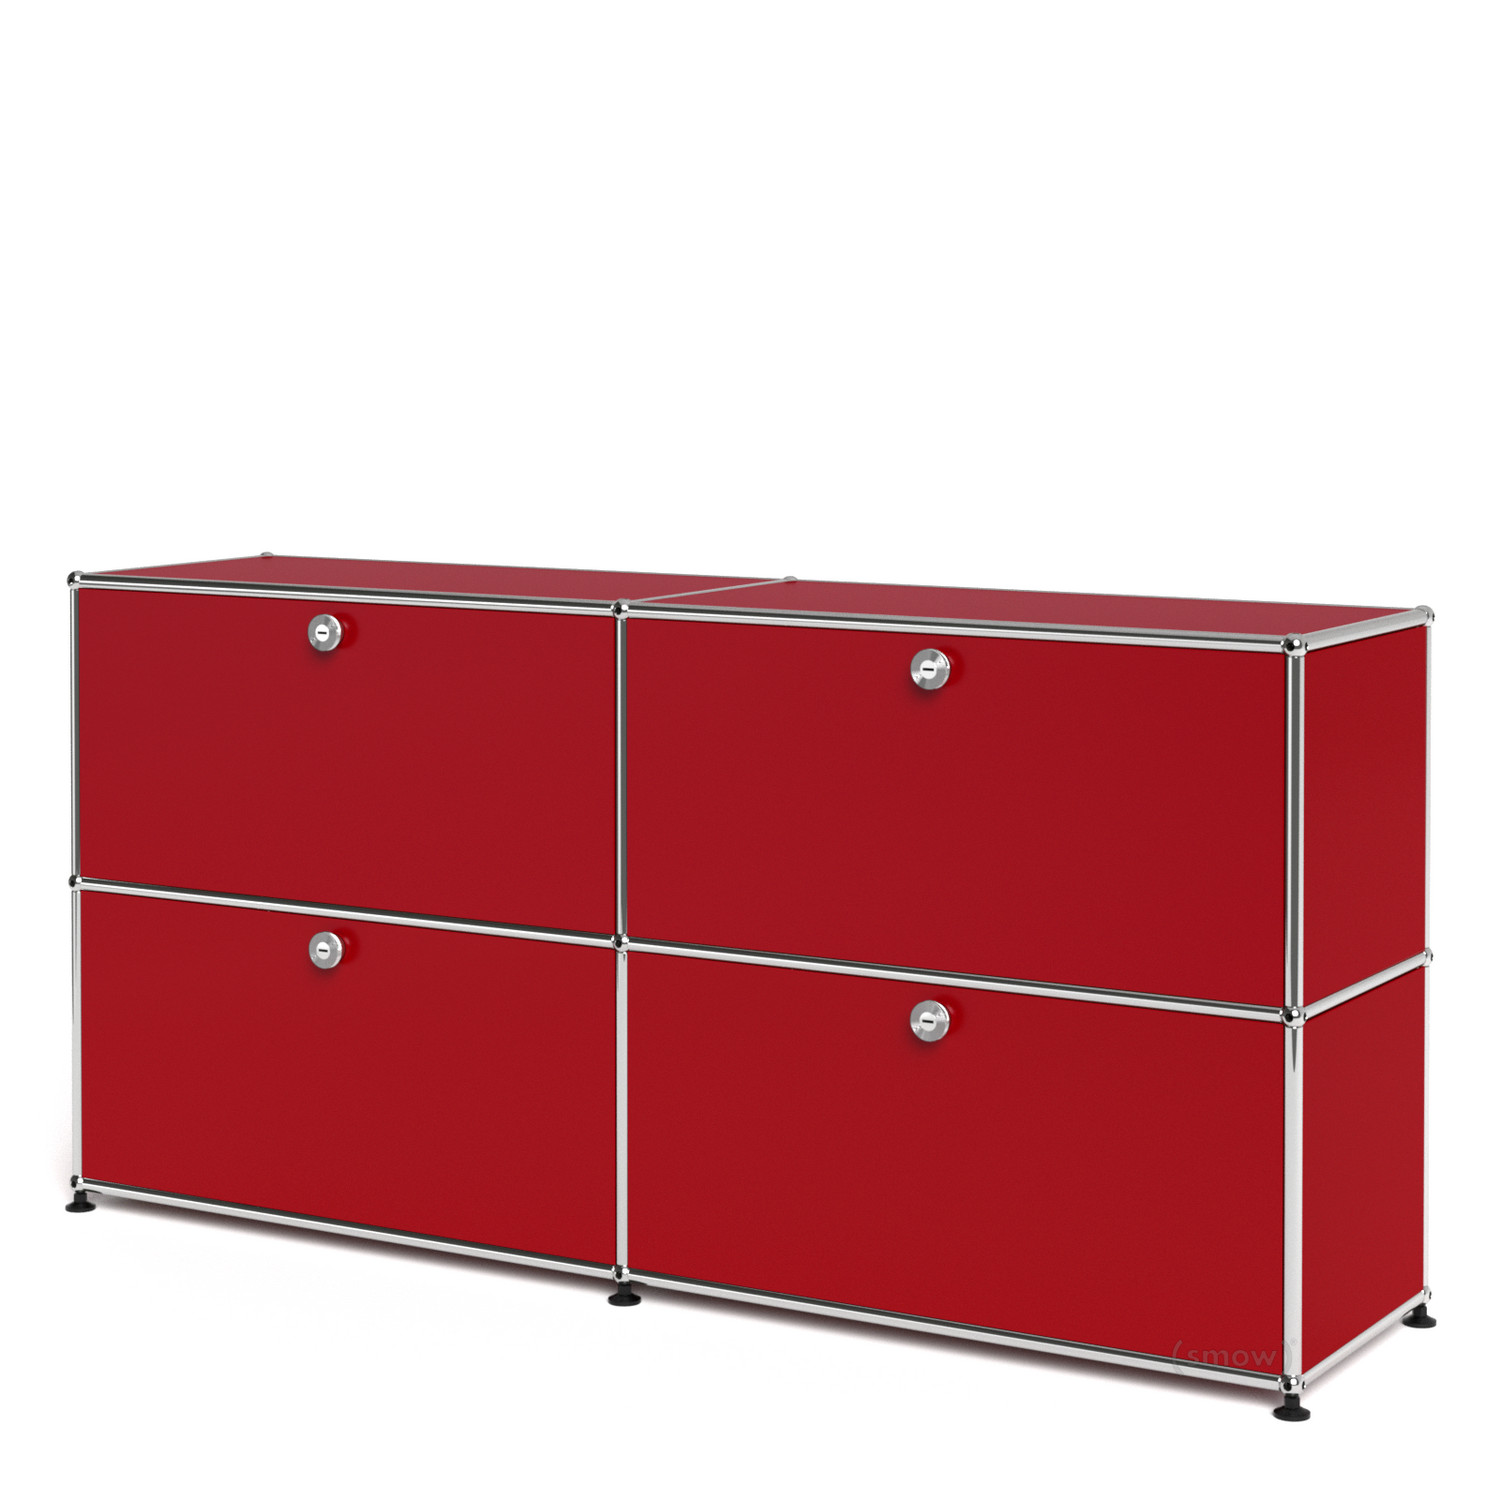 Usm haller sideboard l customisable usm ruby red with 2 for Sideboard usm